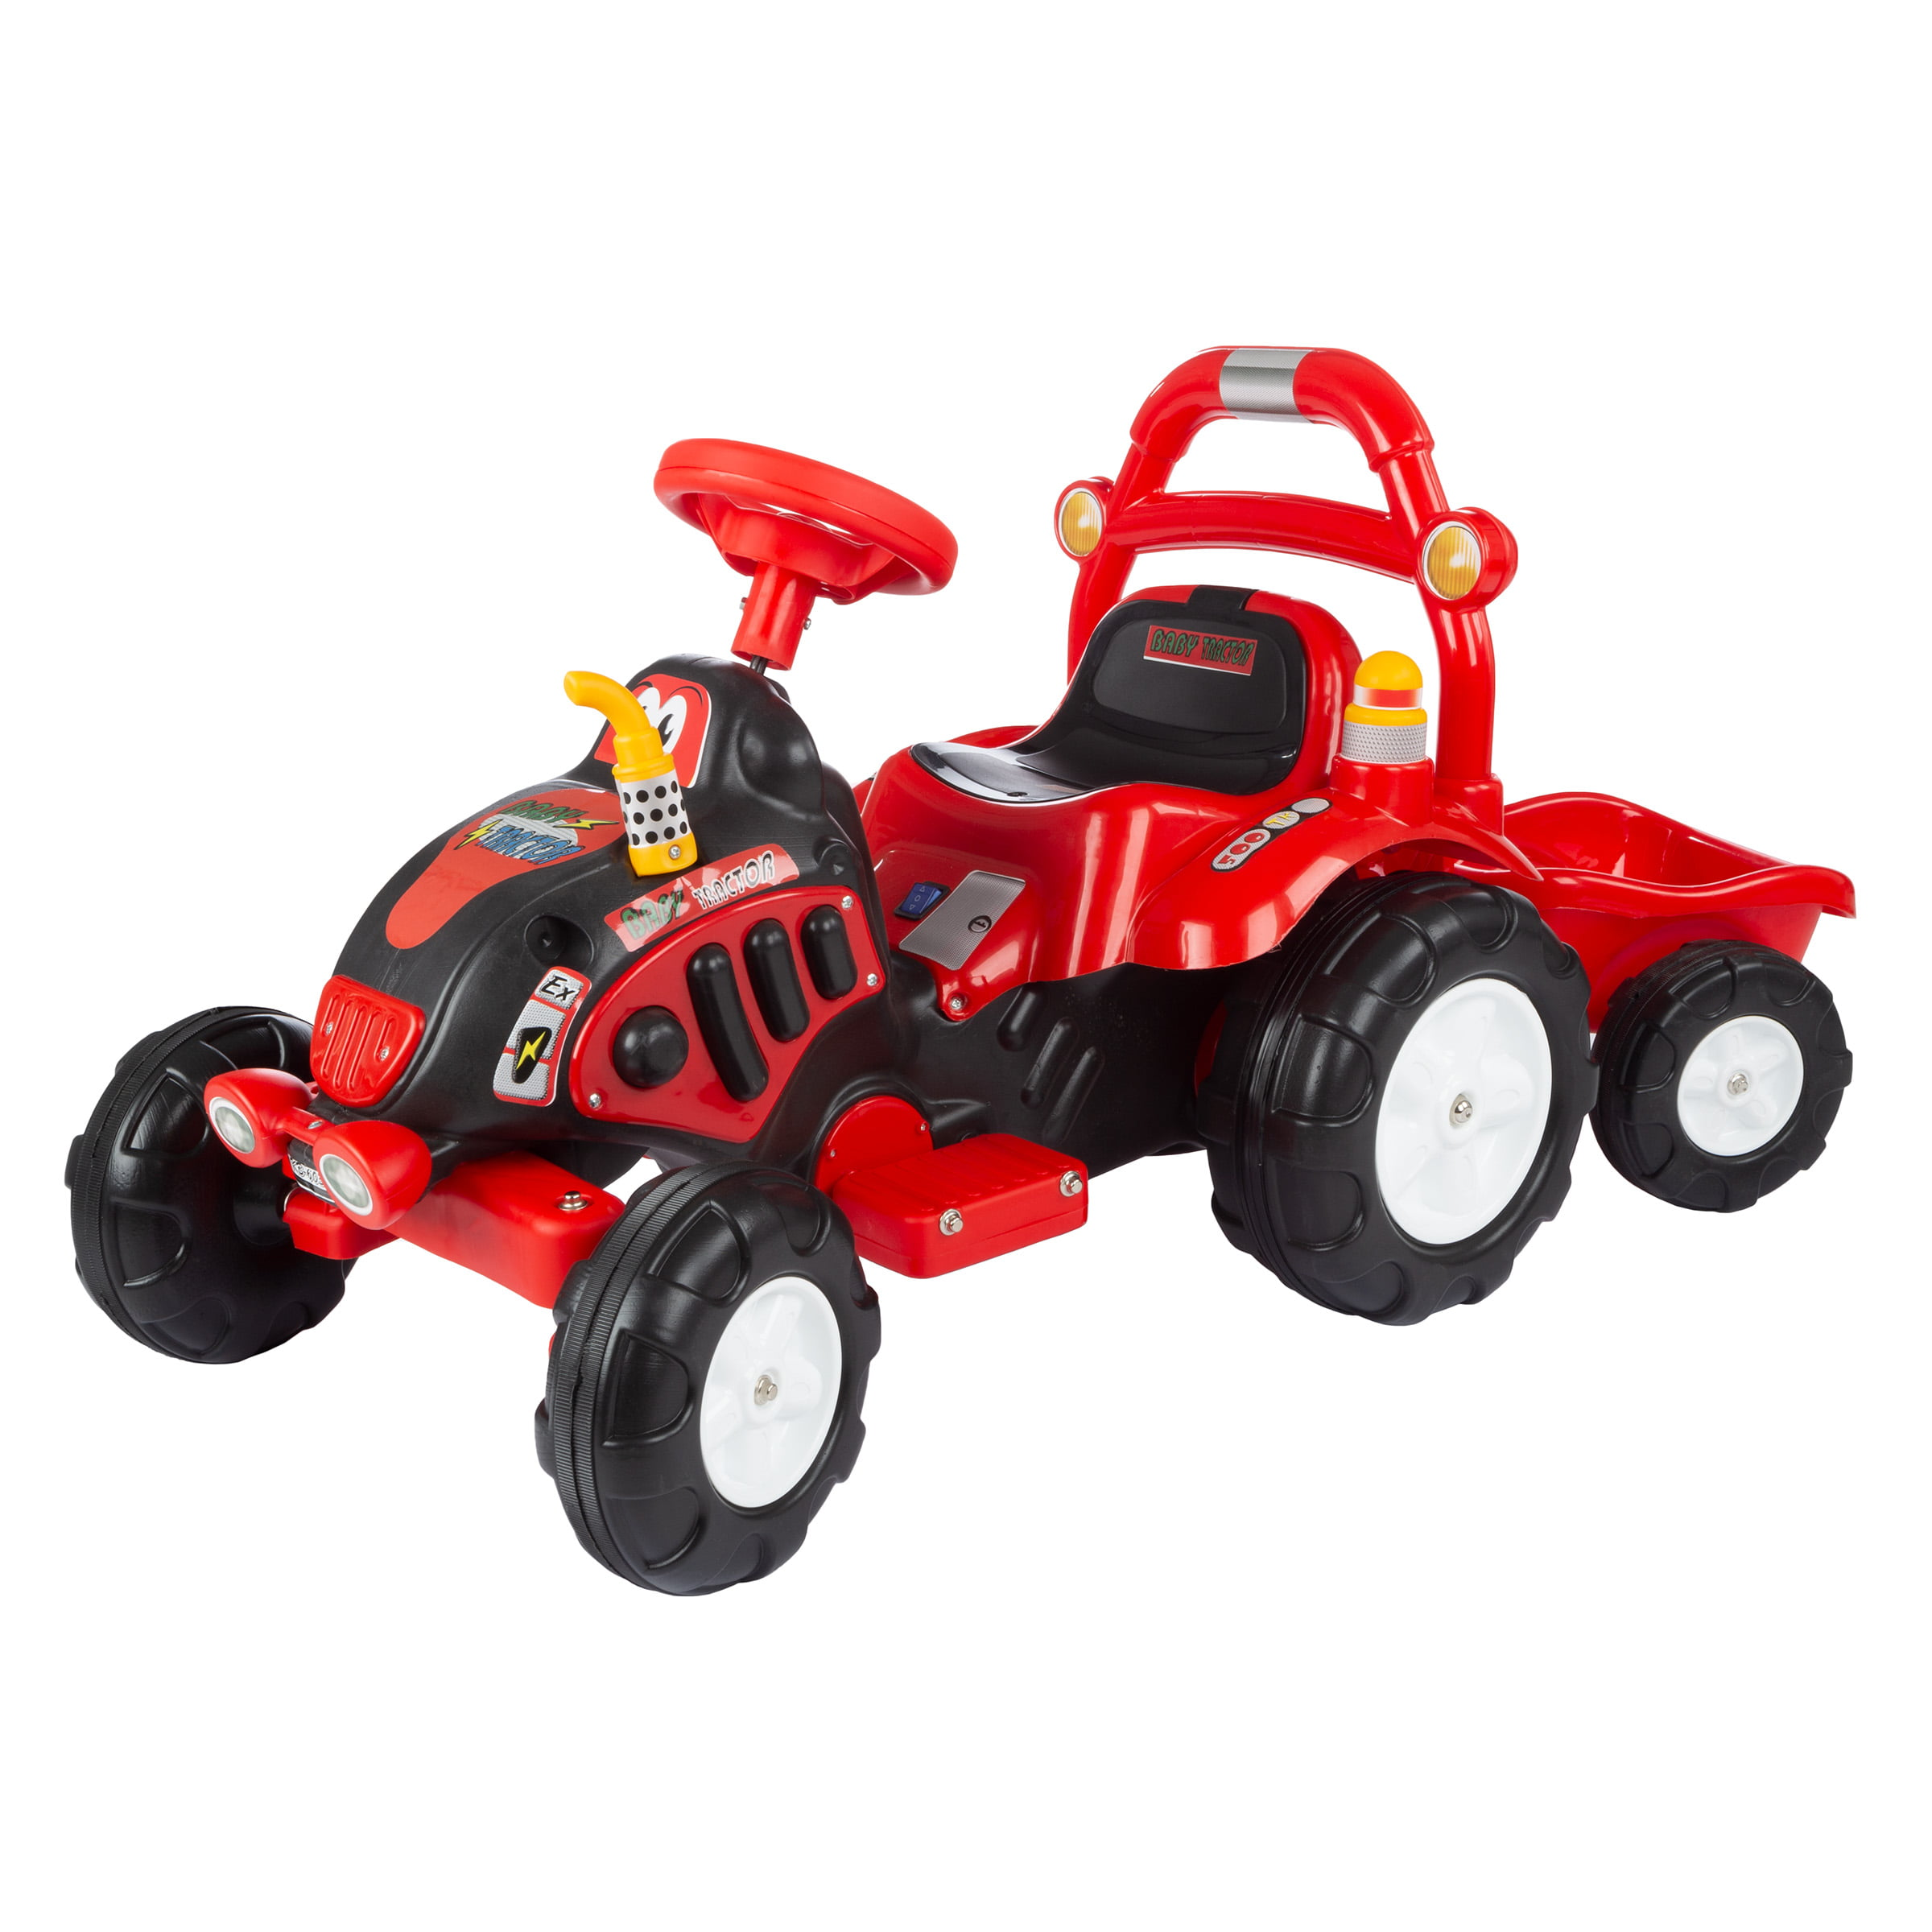 Ride On Toy Tractor And Trailer, Battery Powered Ride On